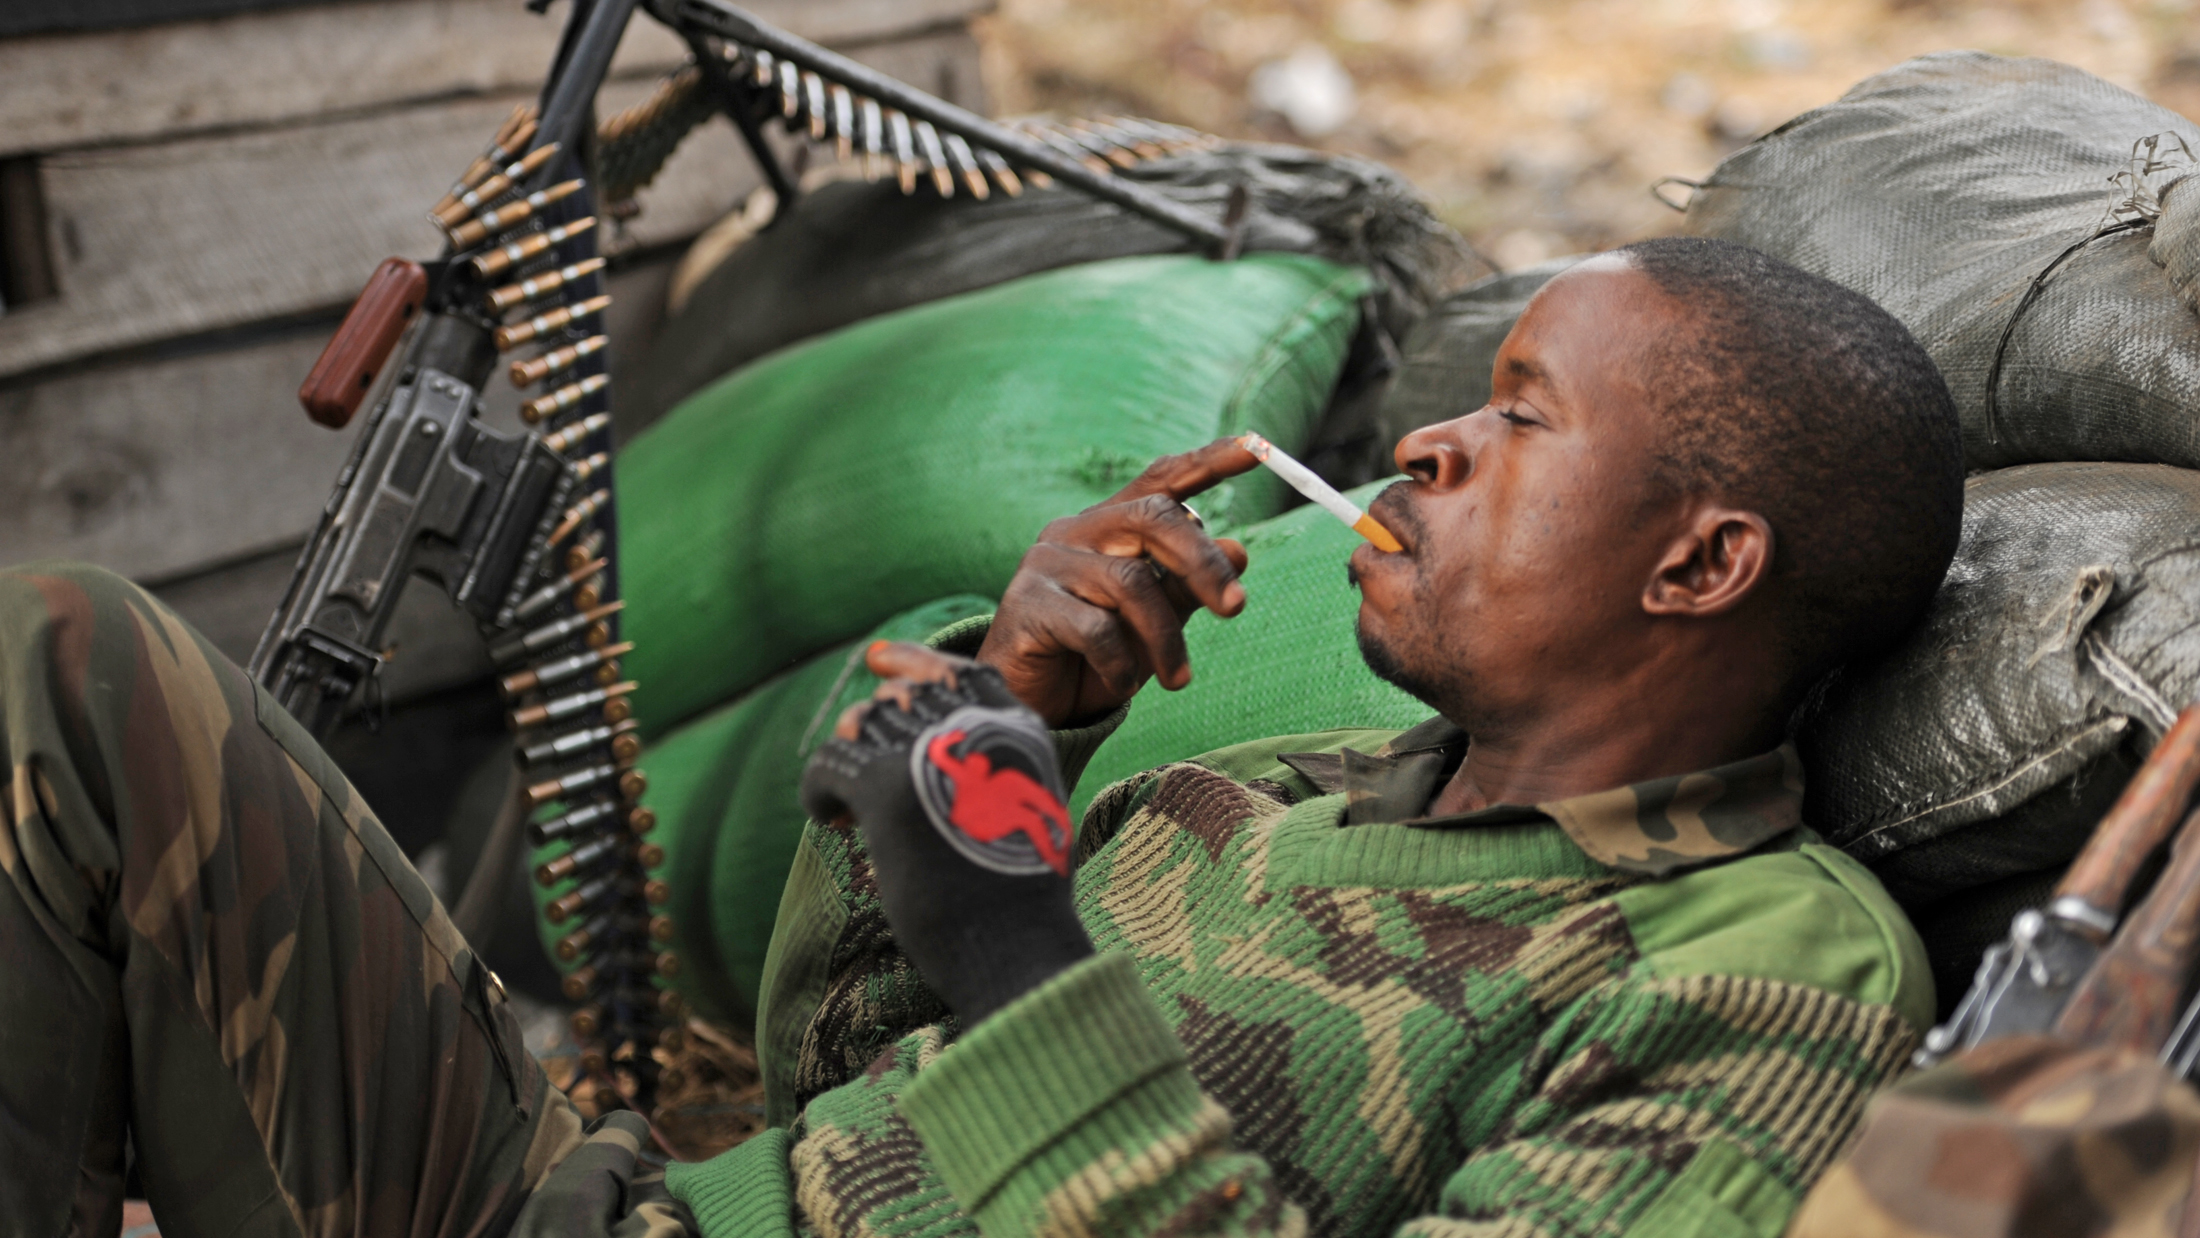 An FARDC soldier has a cigarette on the Kanyaruchinya frontline on the outskirts of the eastern DRC city of Goma